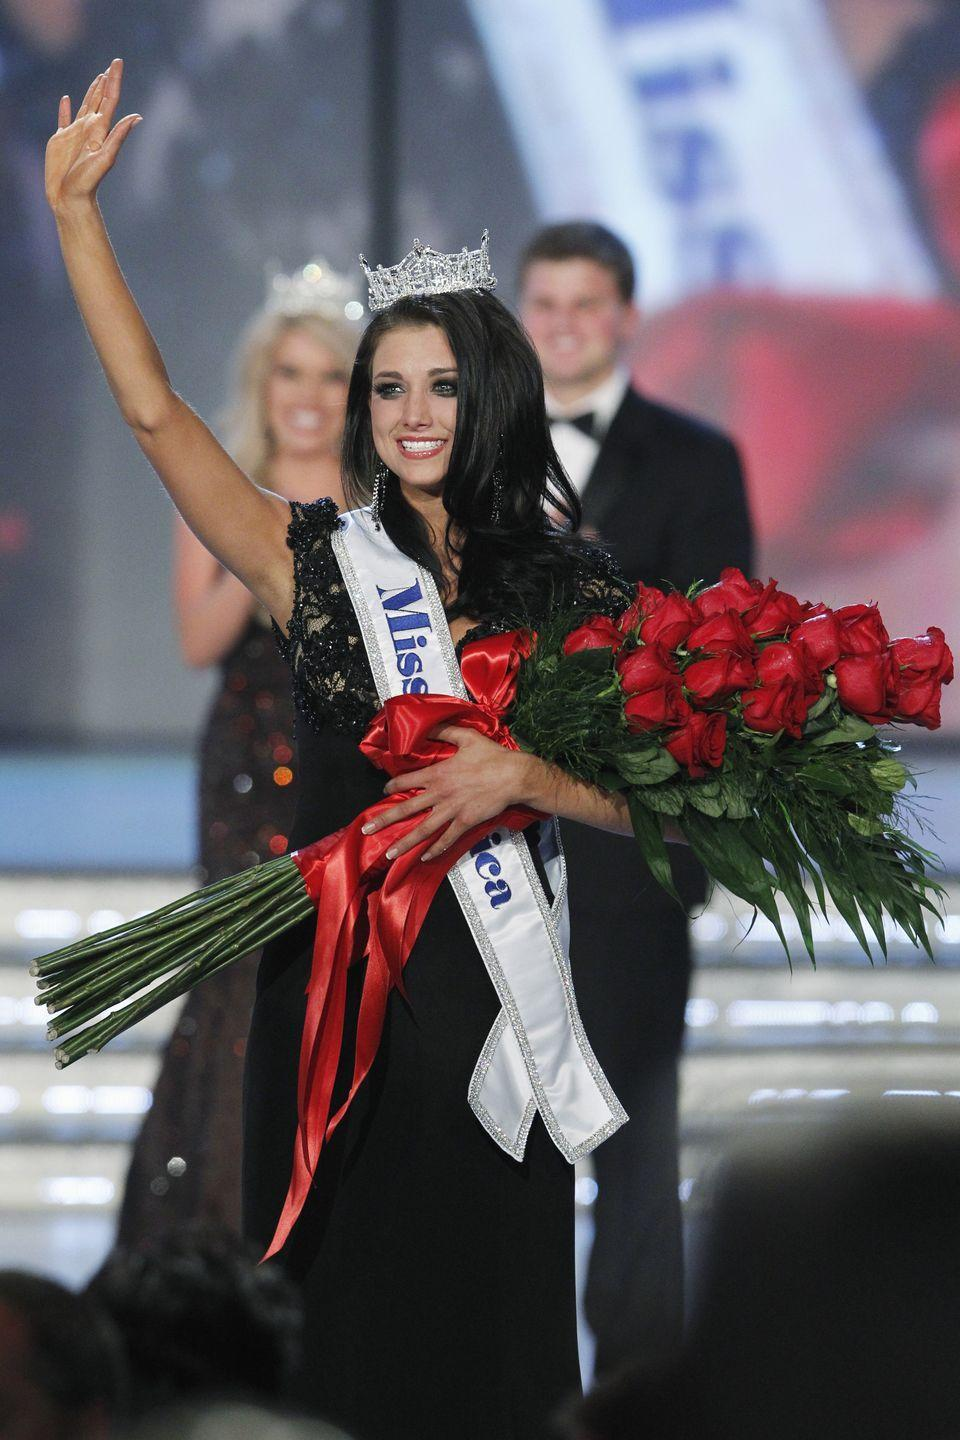 <p>Laura Kaeppeler from Wisconsin's dark eye makeup complimented her black gown when she was chosen as 2012's Miss America. </p>